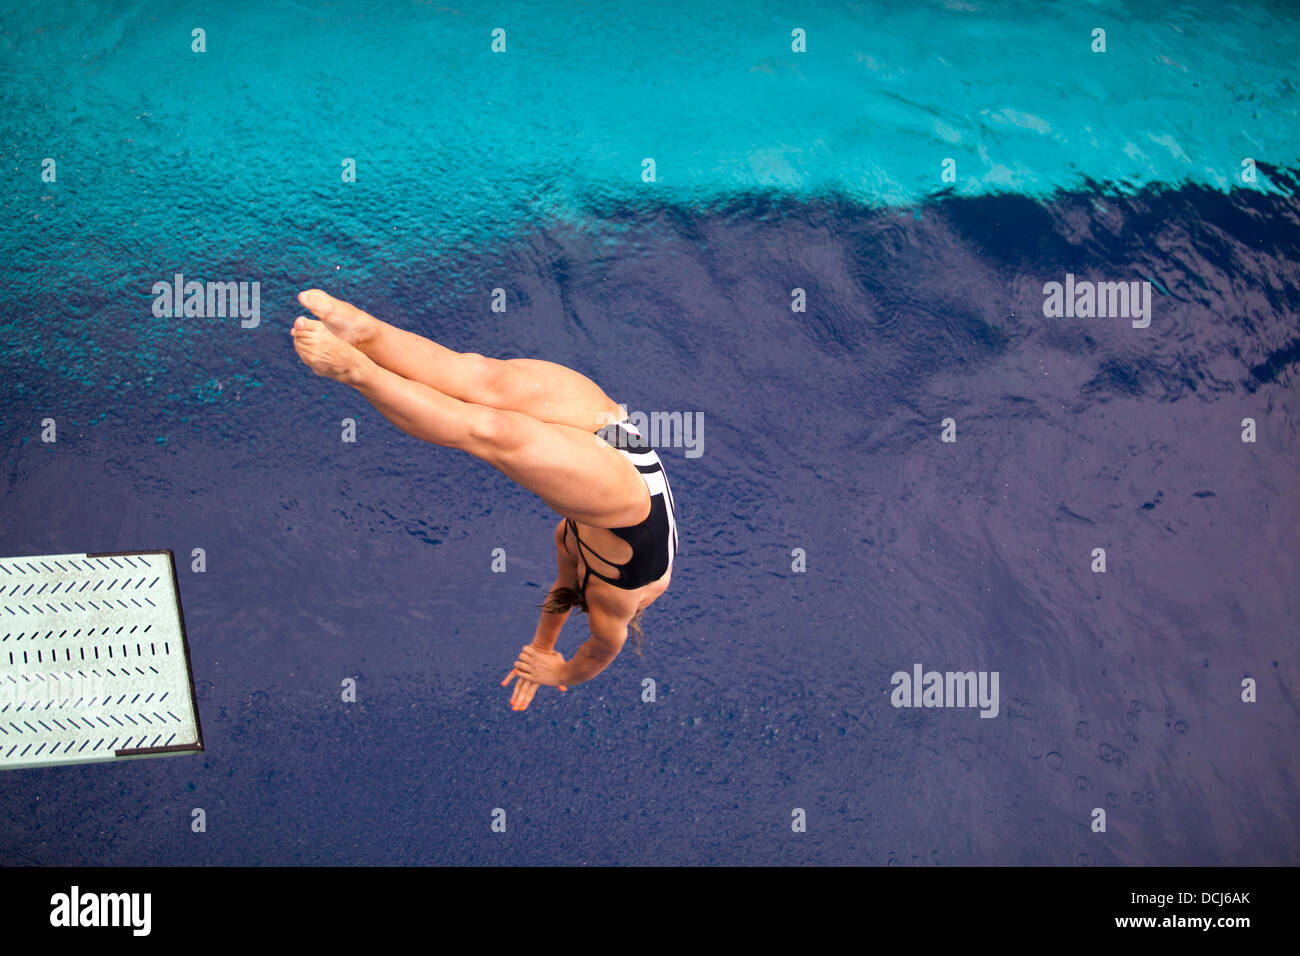 high diver jumping into the water - Stock Image